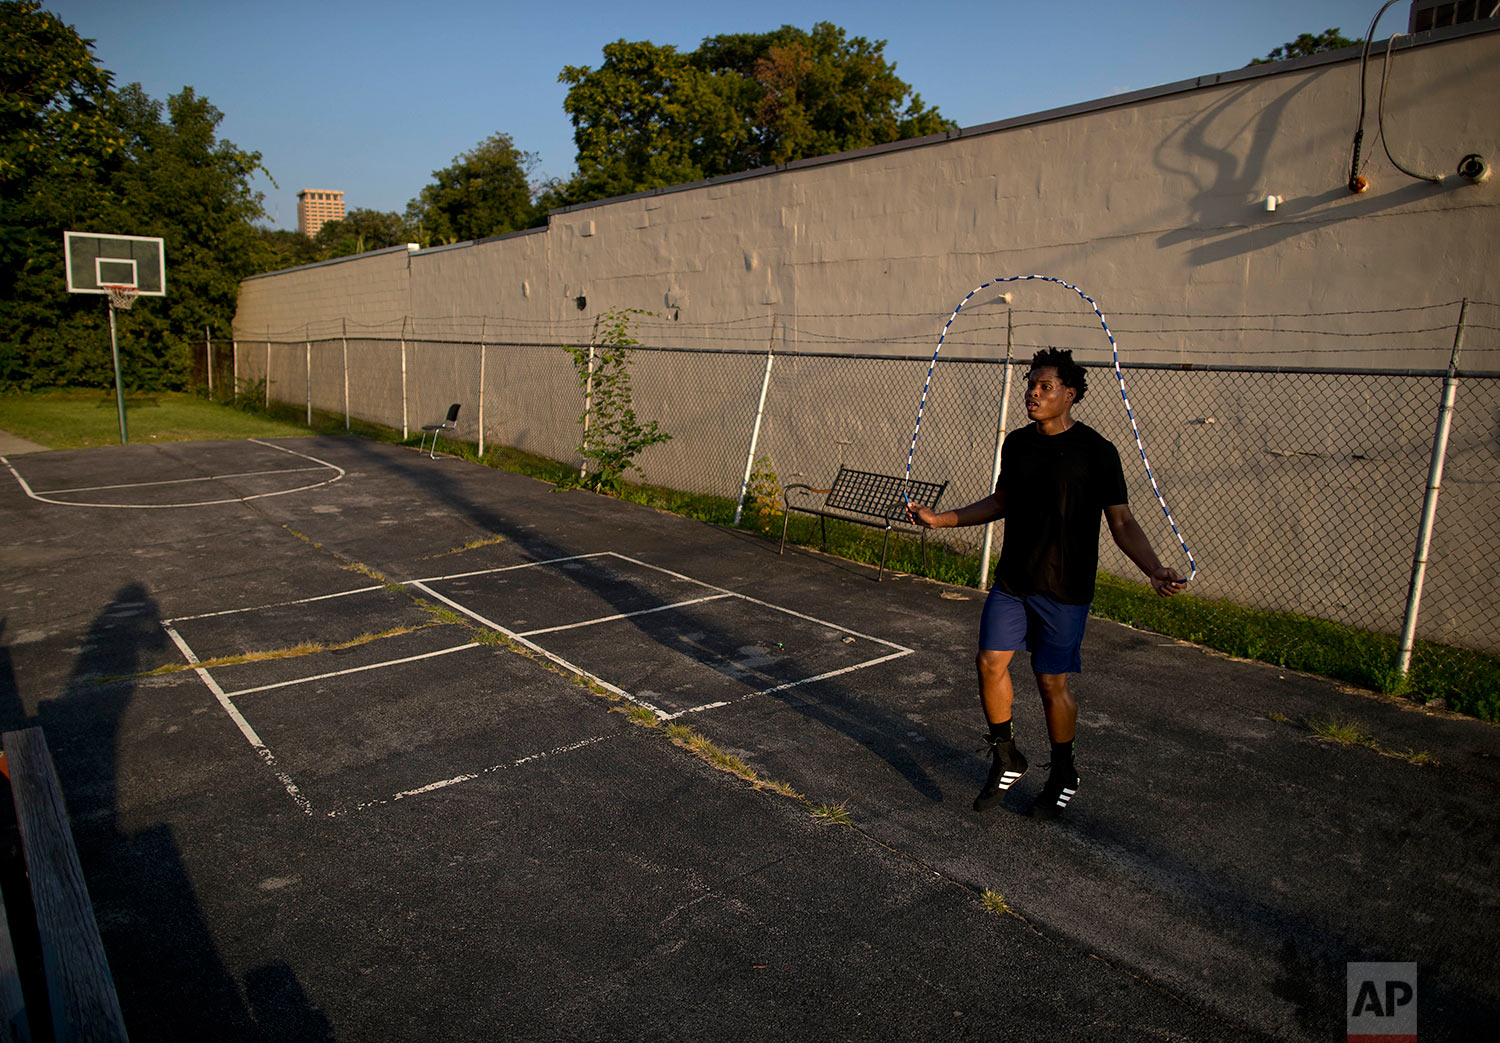 """Sai' Vaughn Coleman, 22, jumps rope outside the Faith and Hope Community Center, Monday, Aug. 21, 2017, in the South Side neighborhood of Syracuse, N.Y. Coach and mentor Arthur """"Bobby"""" Harrison, who was serving in Attica state prison in 1971 during the infamously deadly uprising, believes in providing a firm hand for the teens who train here. (AP Photo/Julie Jacobson)"""